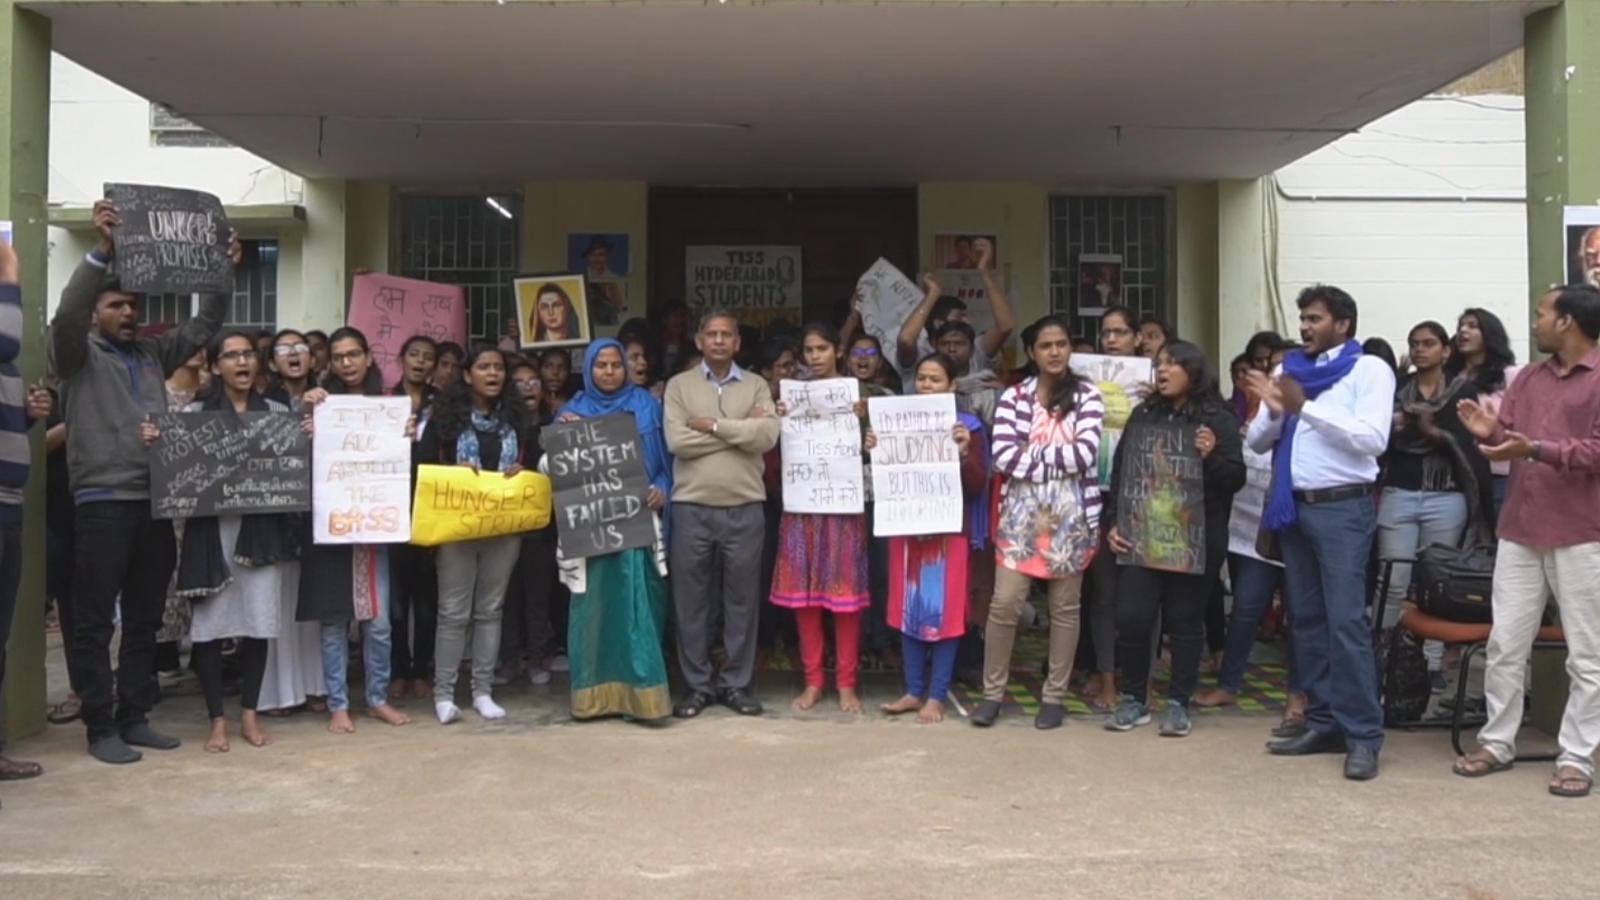 TISS Hyderabad students go on an indefinite hunger strike